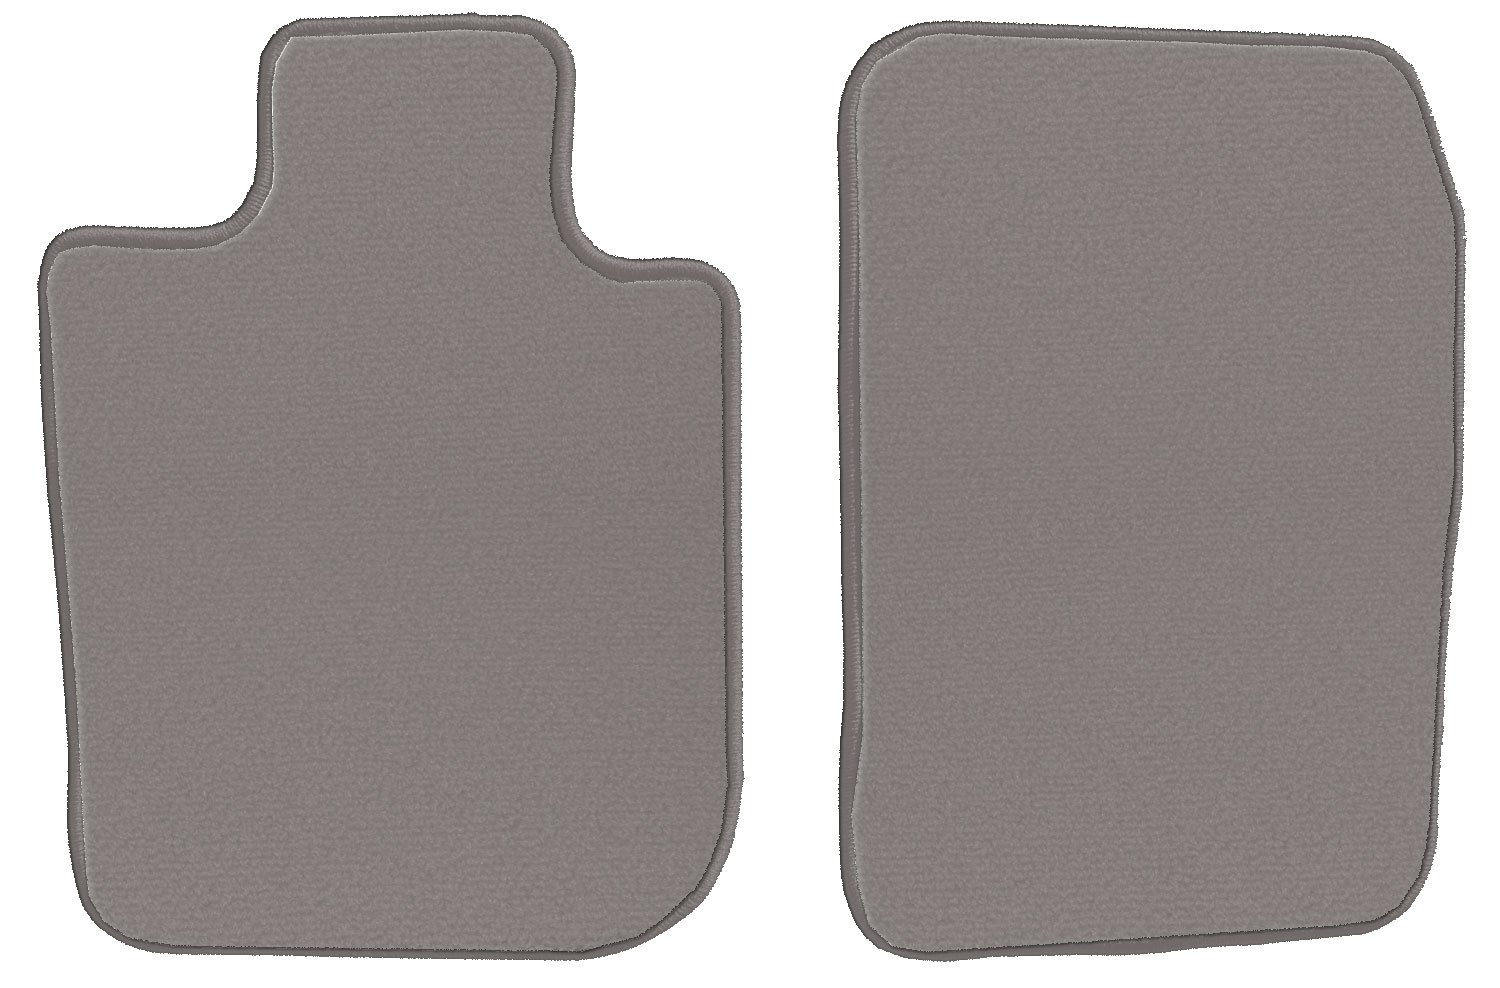 2017 GGBAILEY D51197-F1A-GY-LP Custom Fit Car Mats for 2014 2016 2015 2018 BMW 2 Series Grey Loop Driver /& Passenger Floor